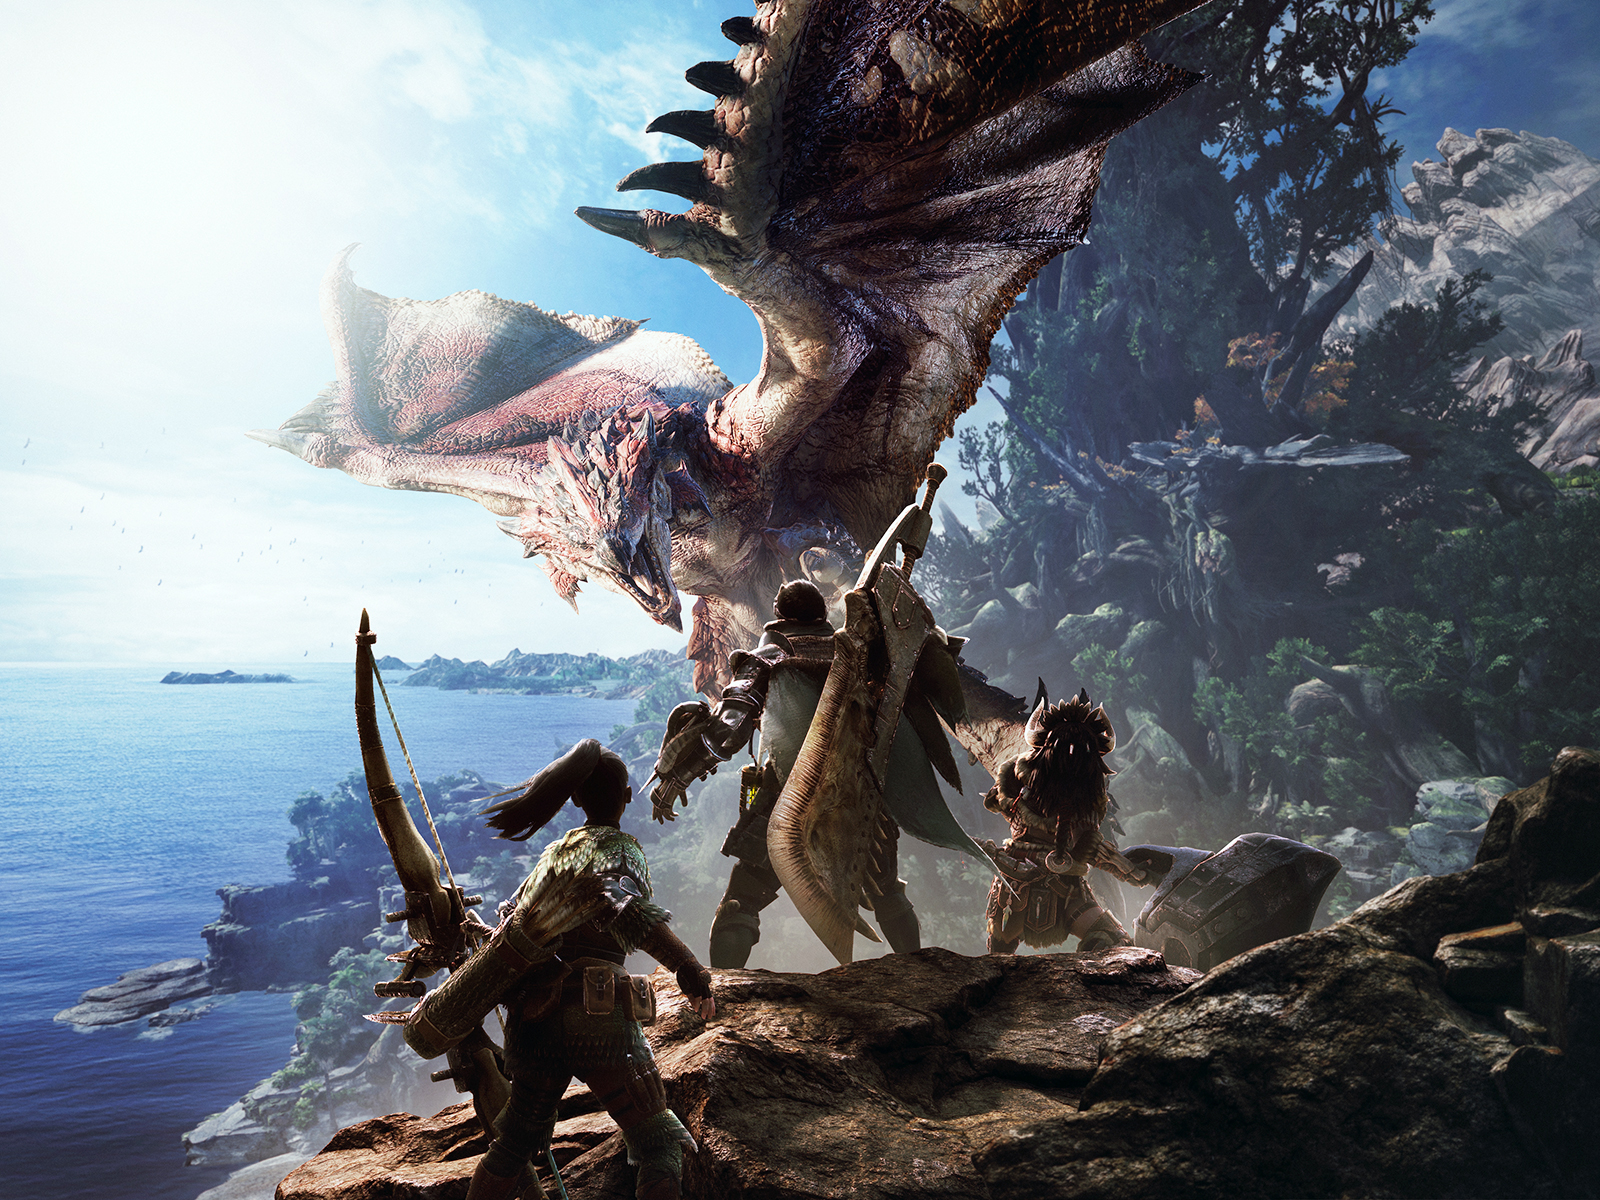 capcom video game monster hunter world